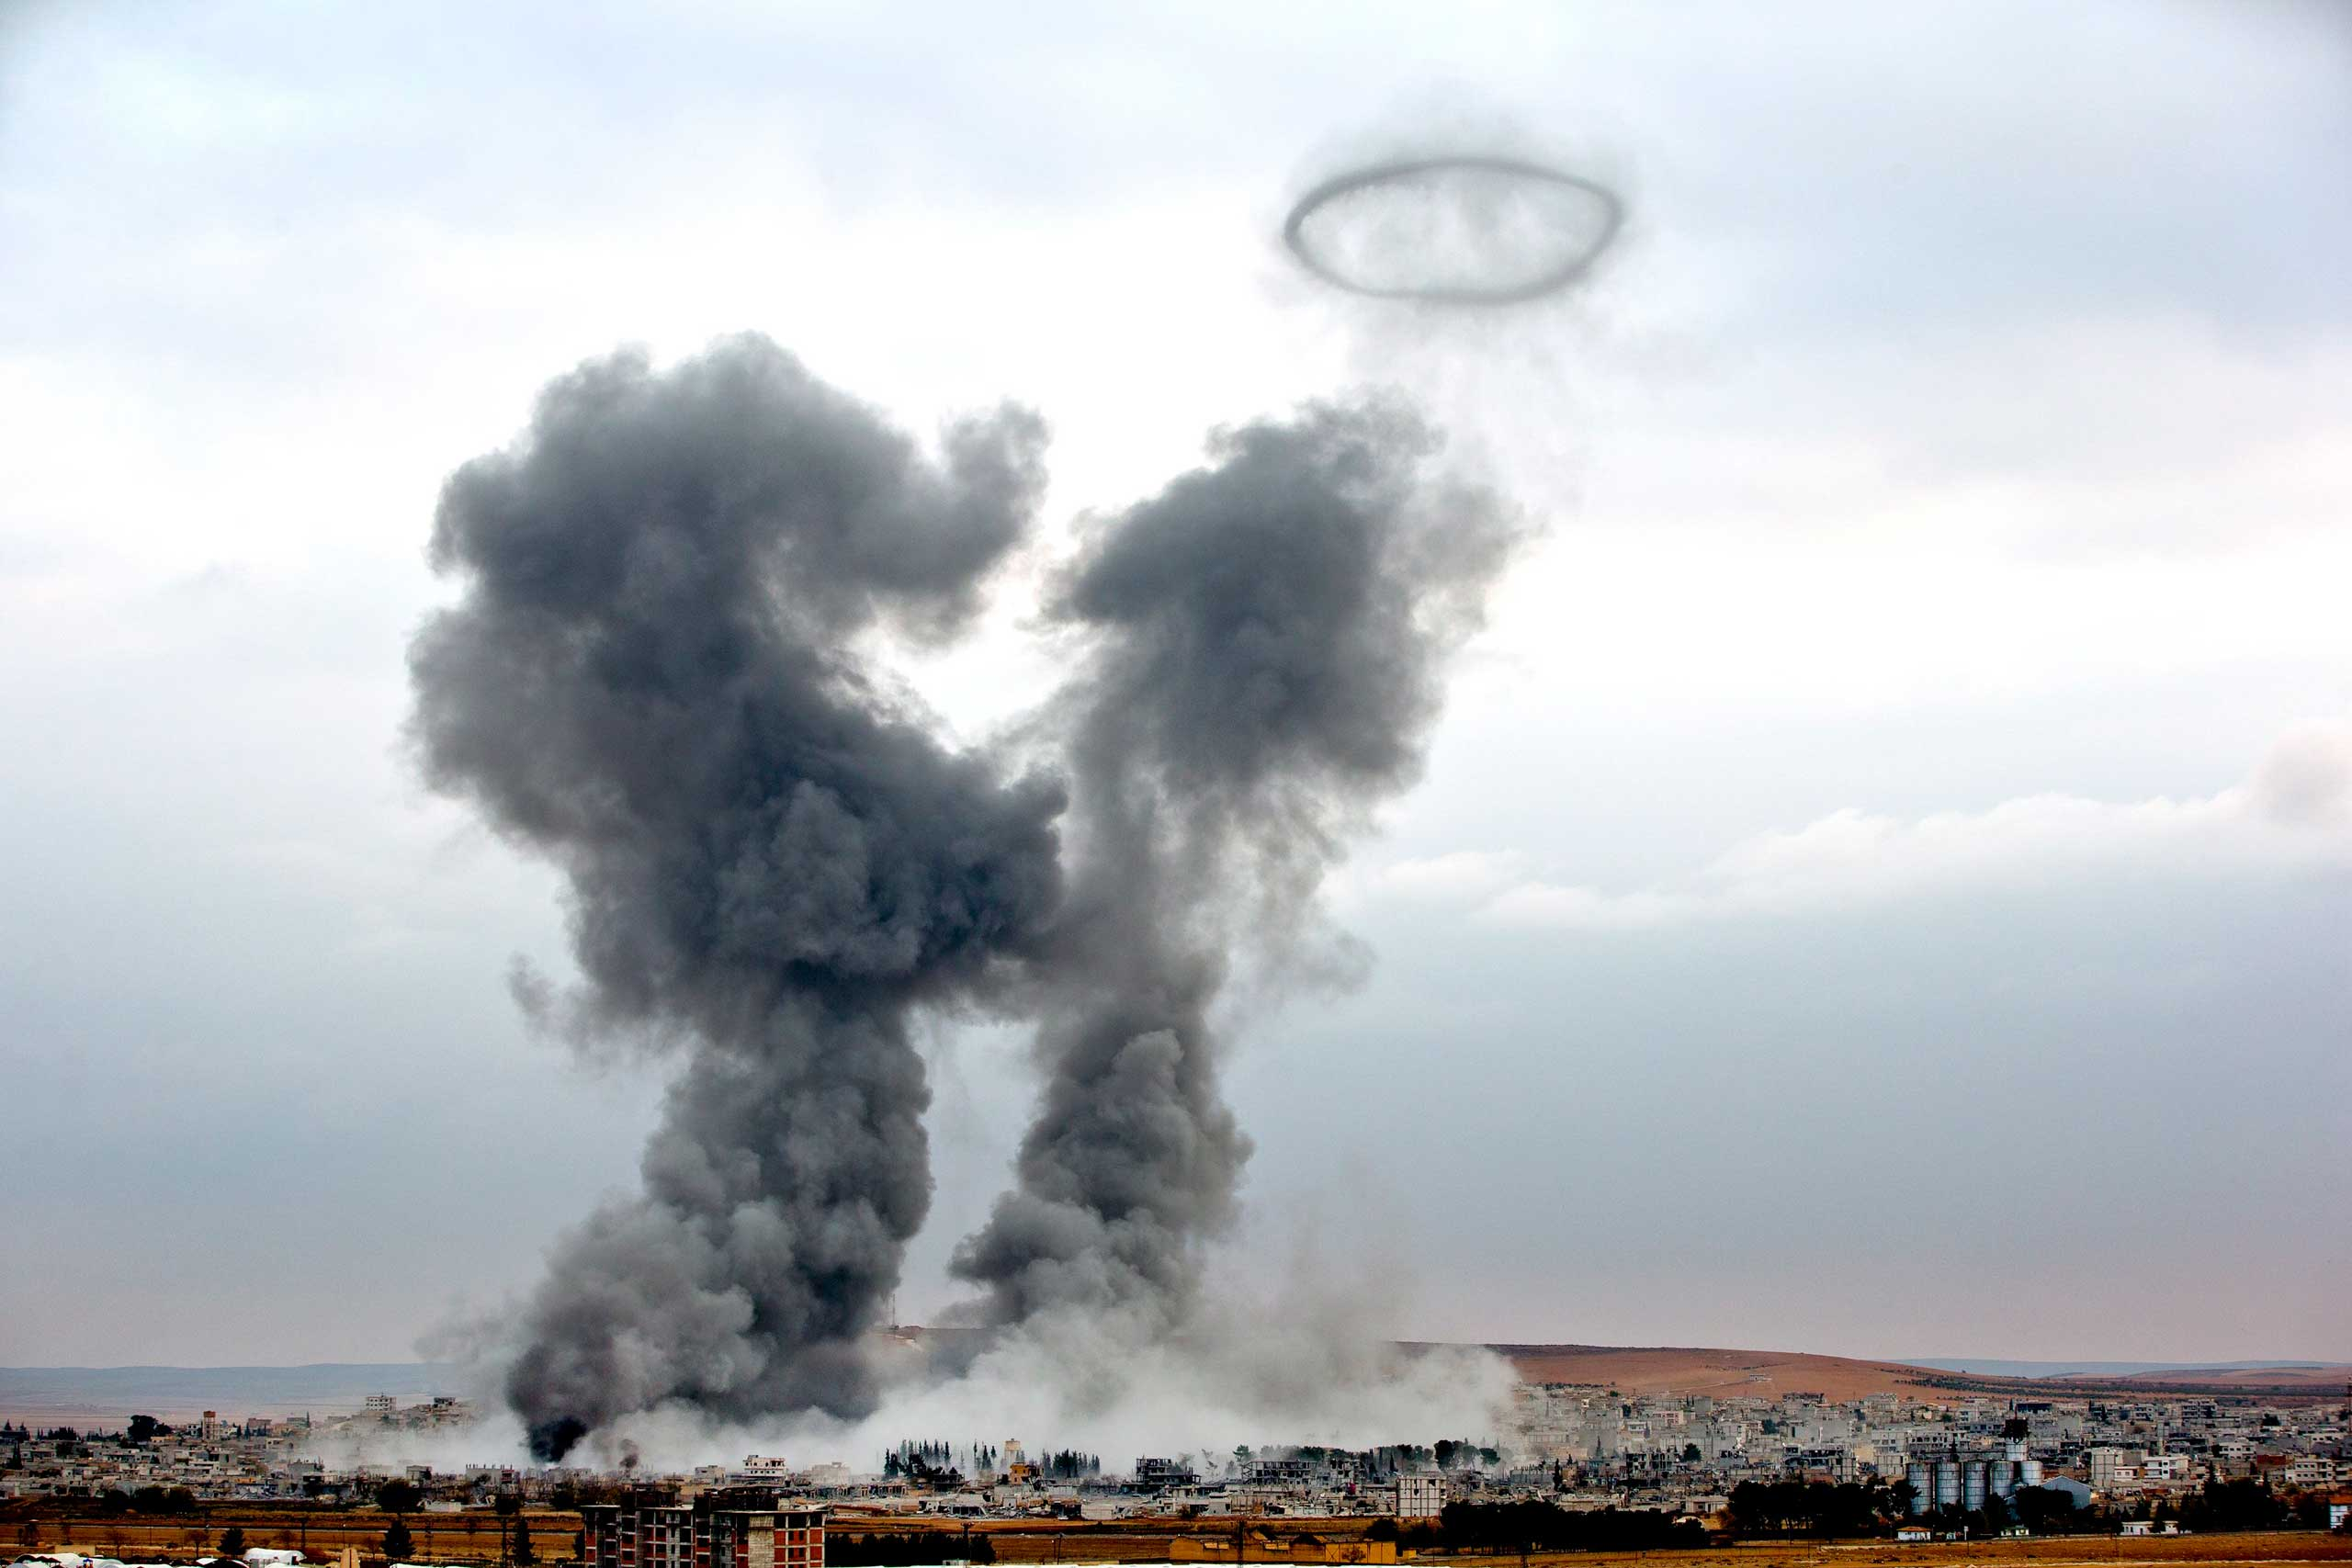 Nov. 17, 2014. Smoke rises from the Syrian city of Kobani, following airstrikes by the U.S.-led coalition, seen from a hilltop outside Suruc, on the Turkey-Syria border.